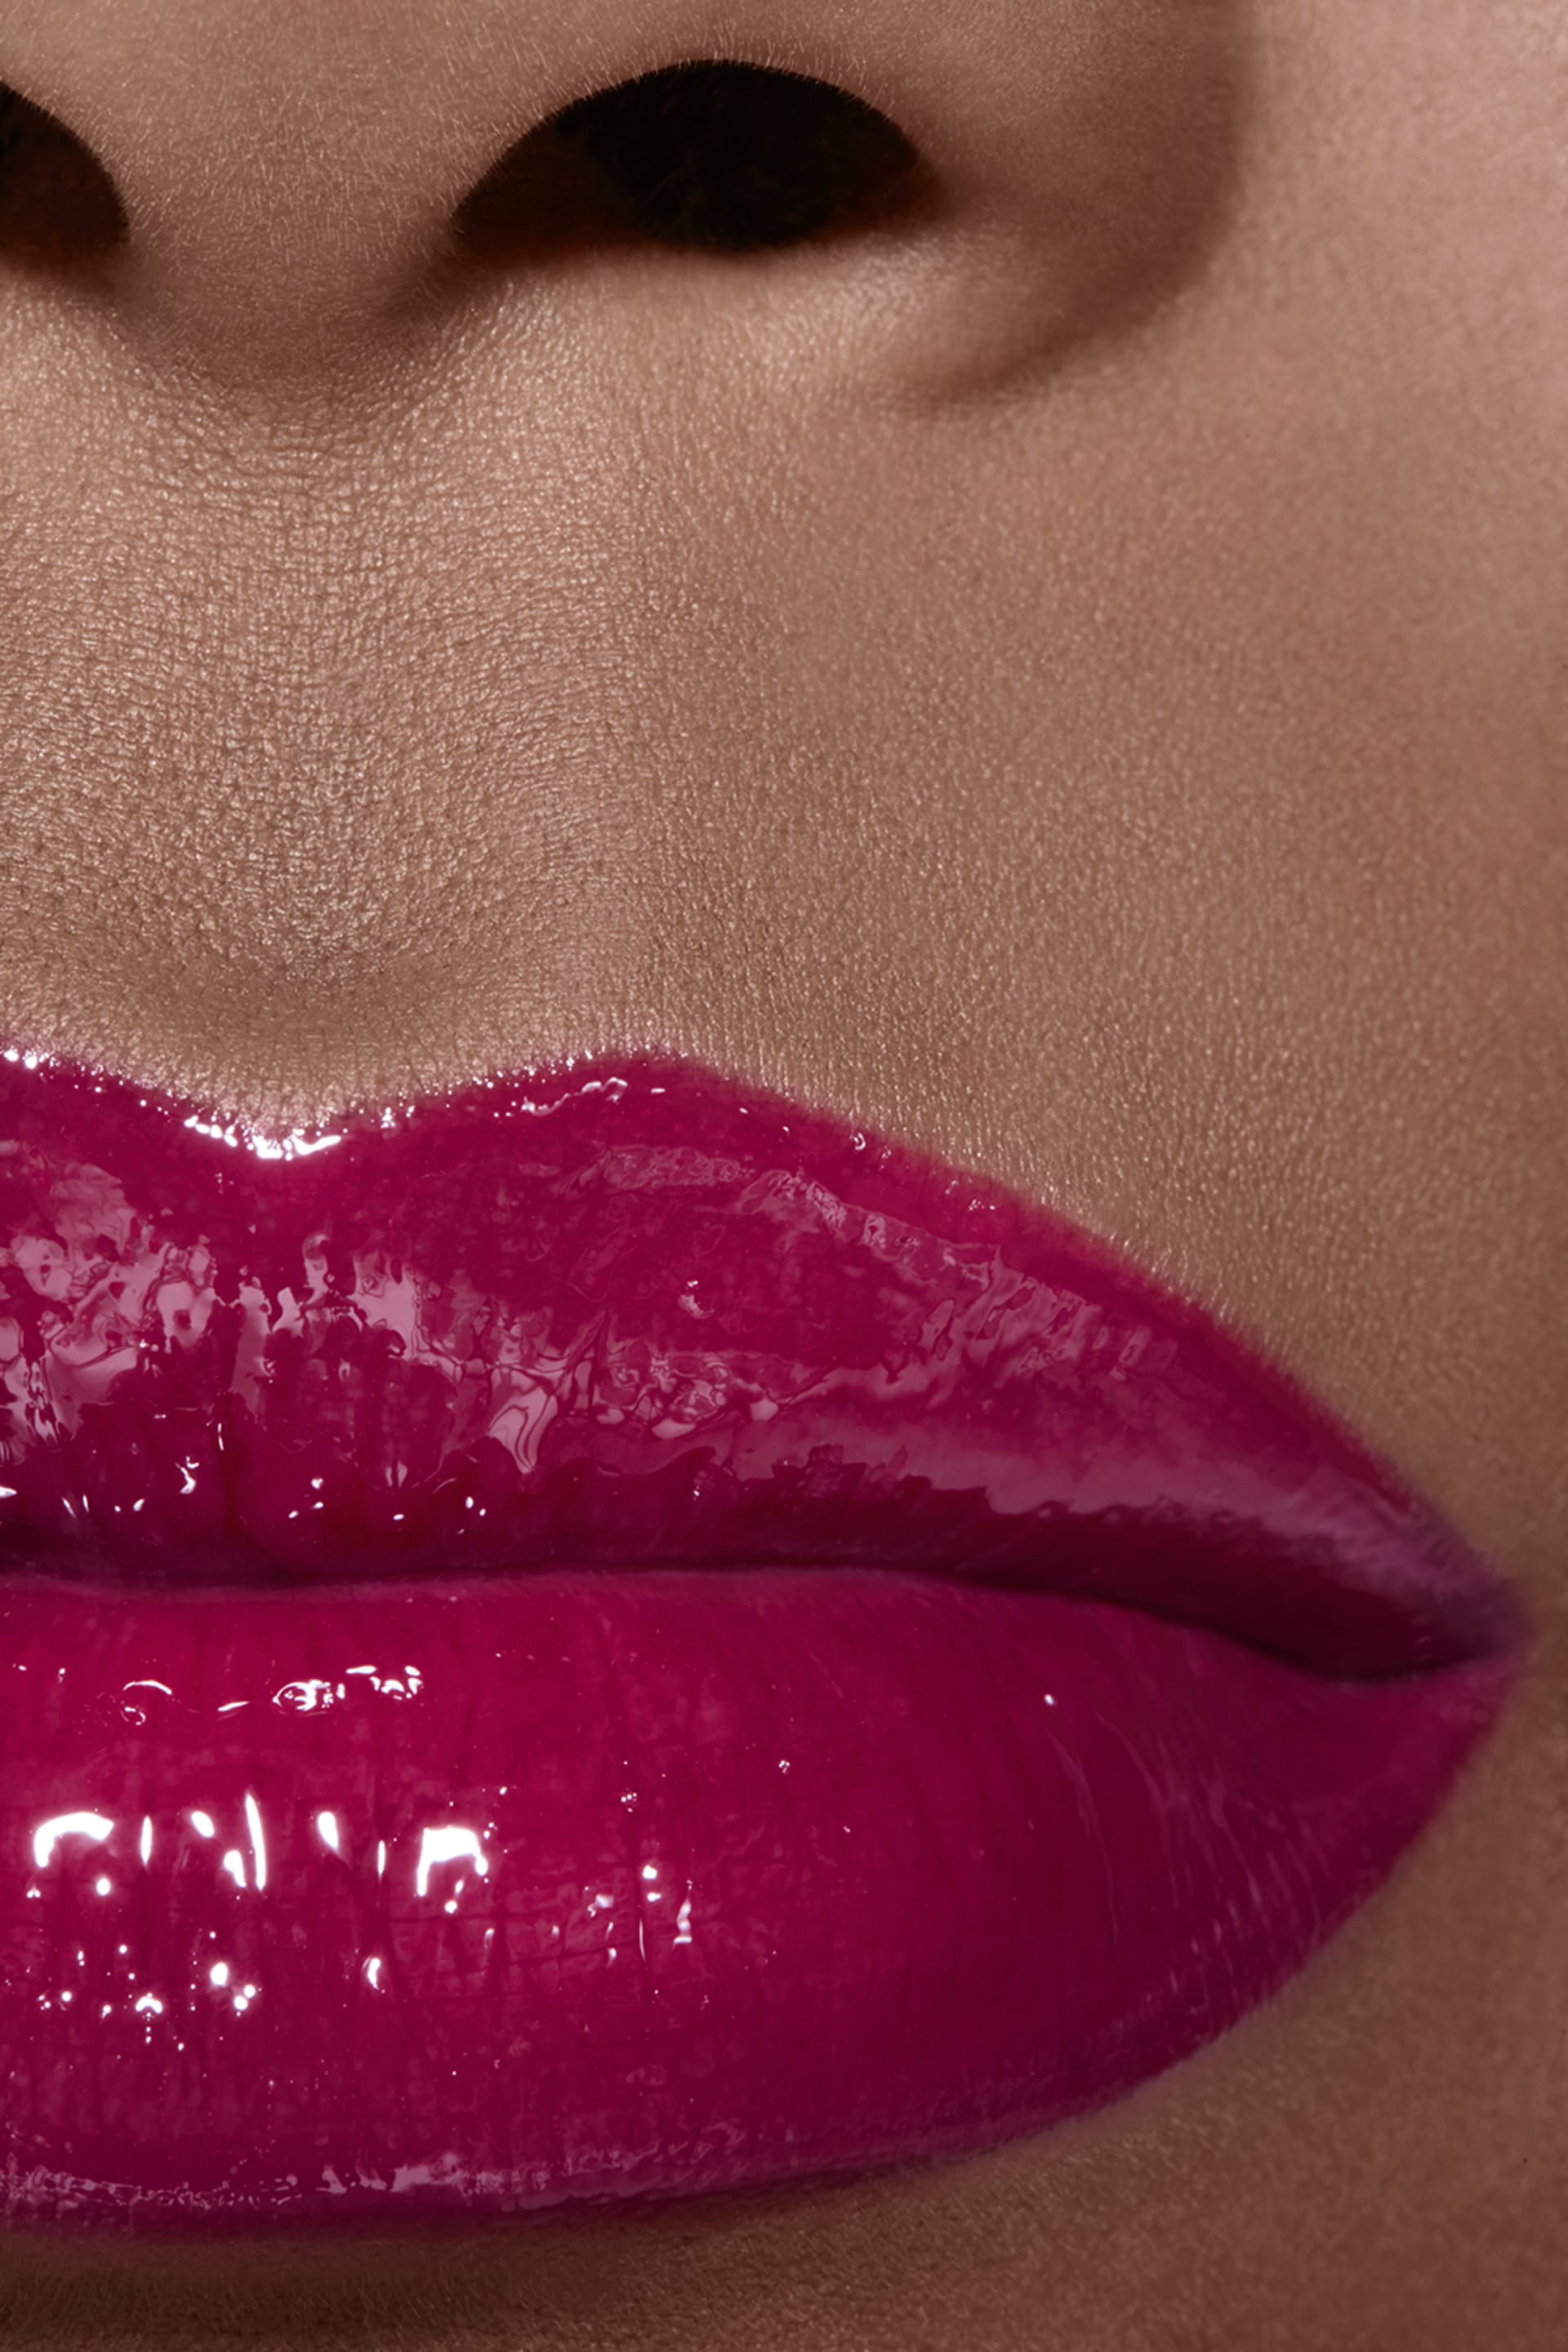 Application makeup visual 2 - ROUGE COCO GLOSS 766 - CARACTÈRE